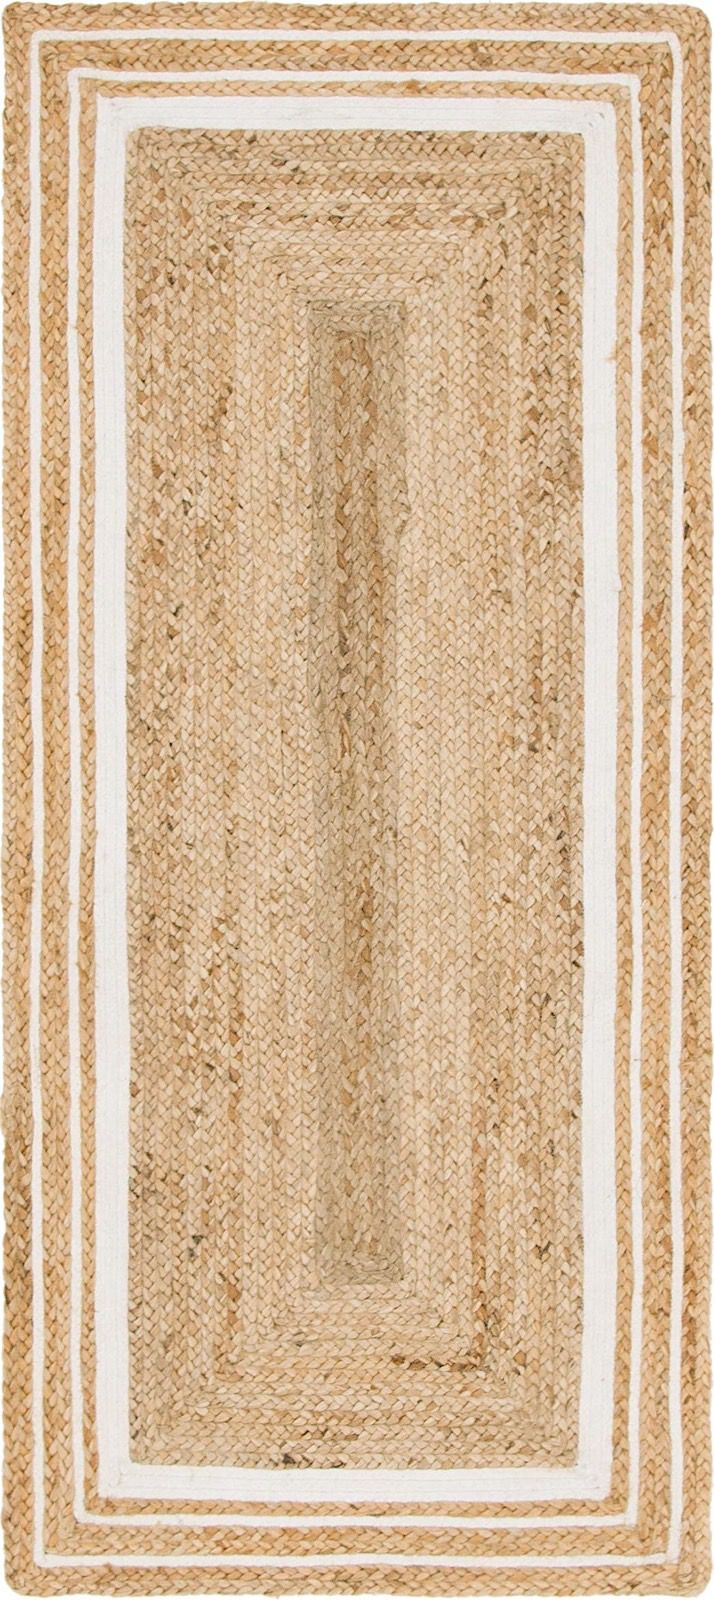 jewel braided area rug collection